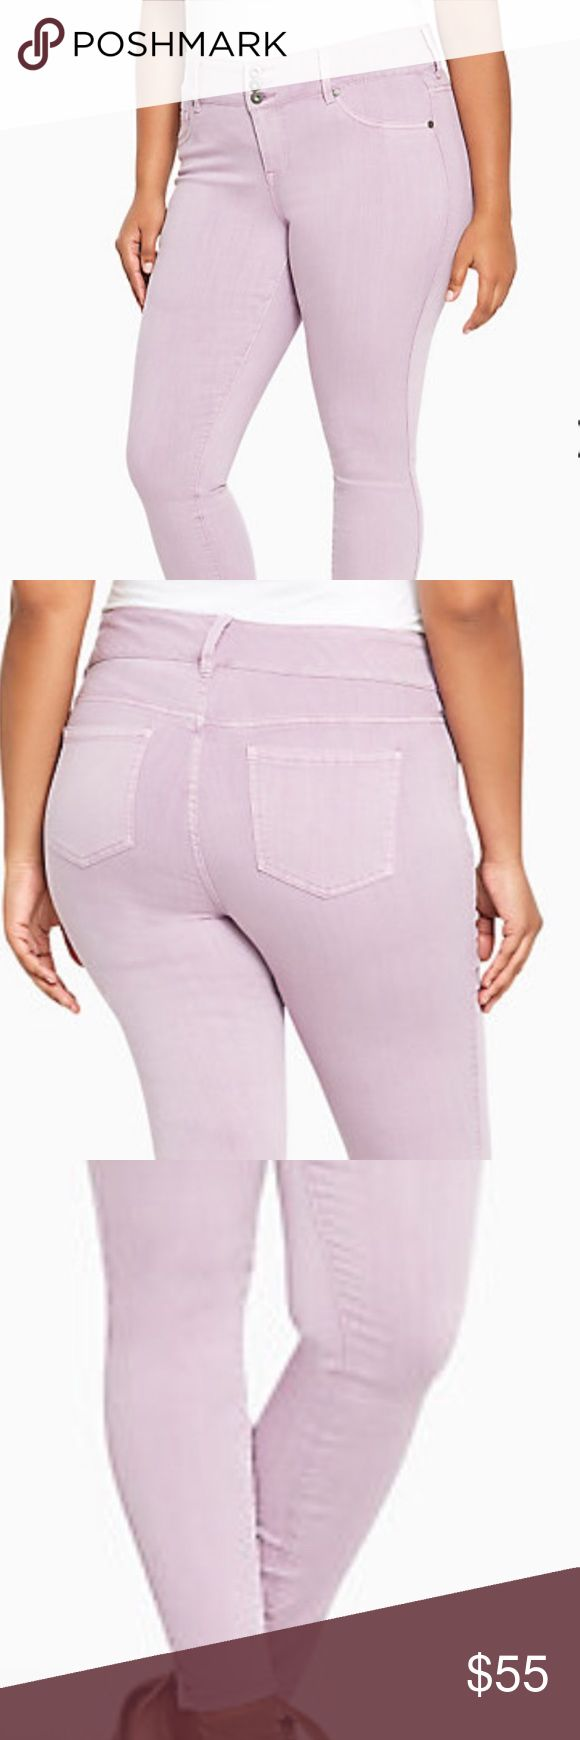 Lavender jeans! Love these lavender jeans. Such a beautiful color!! Jeggings from torrid. Size 18R. Still in the plastic, never worn. torrid Jeans Skinny